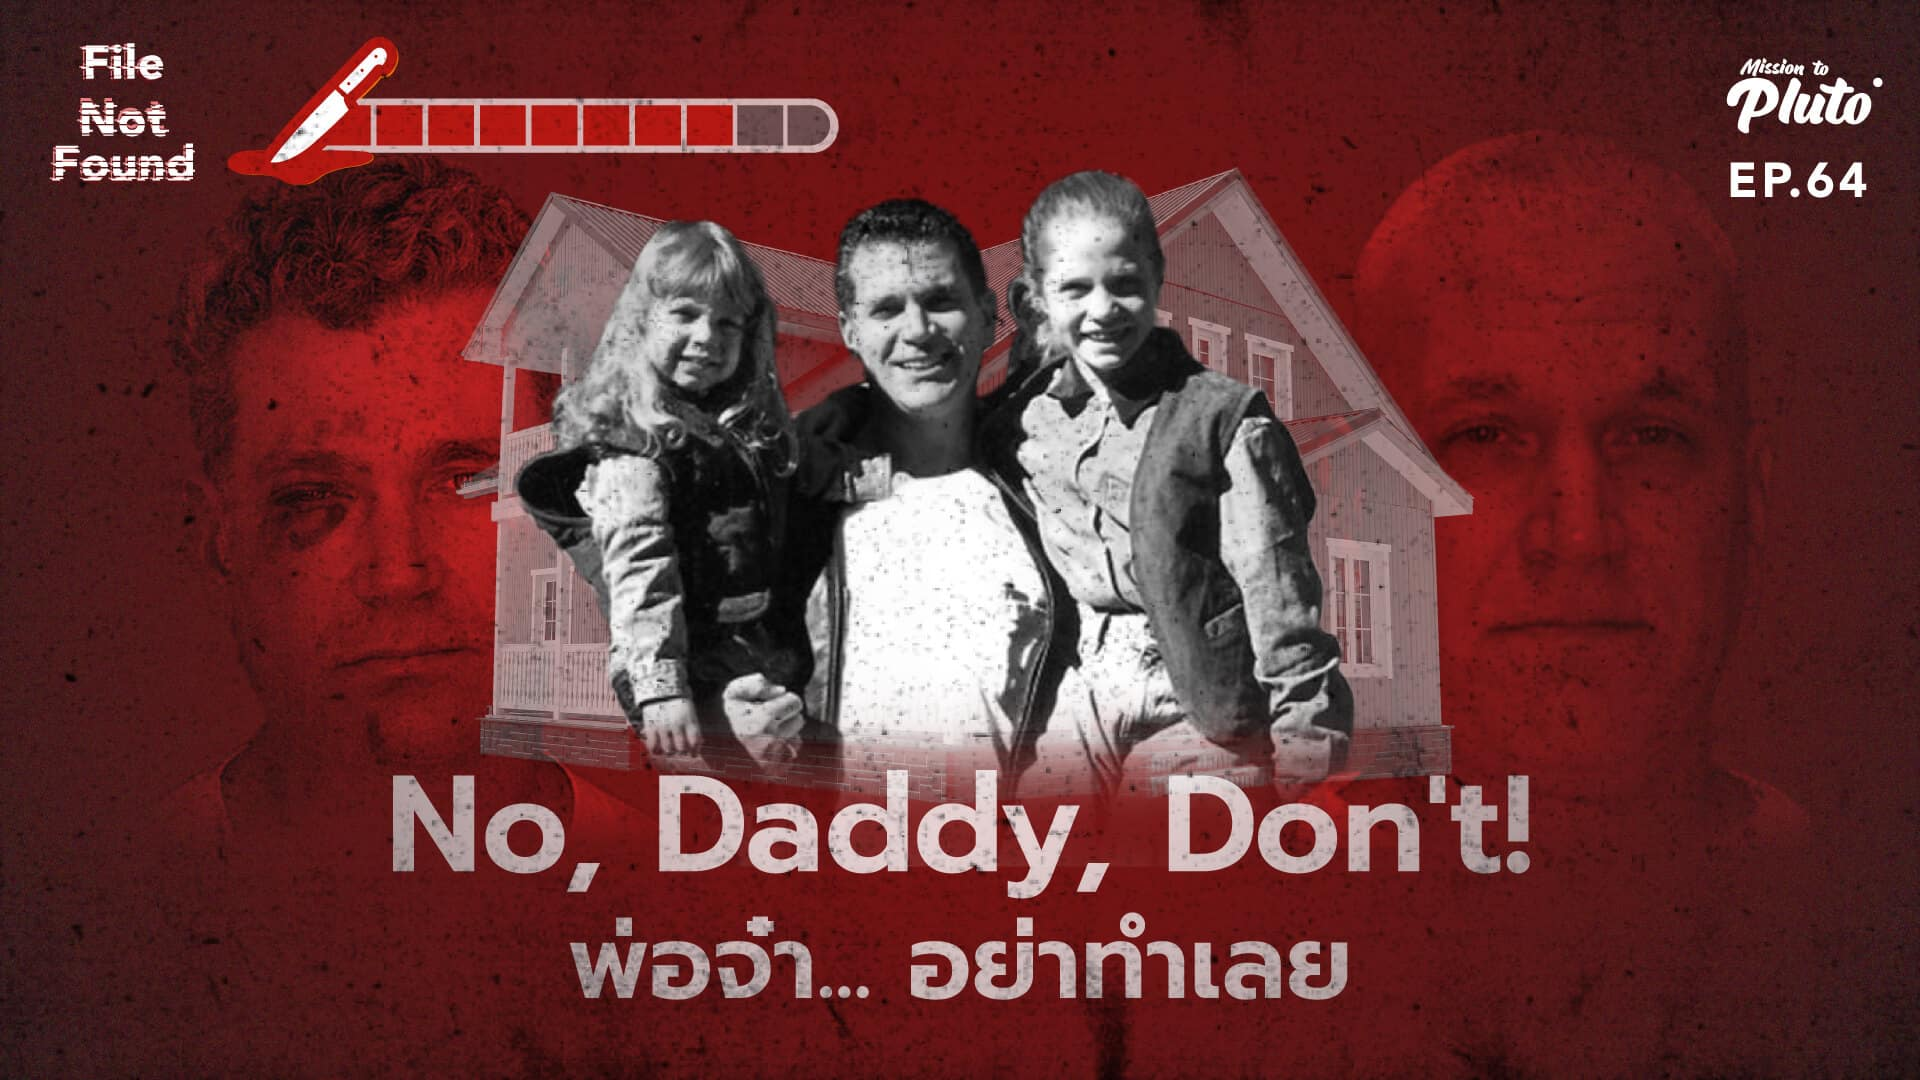 No, Daddy, Don't!